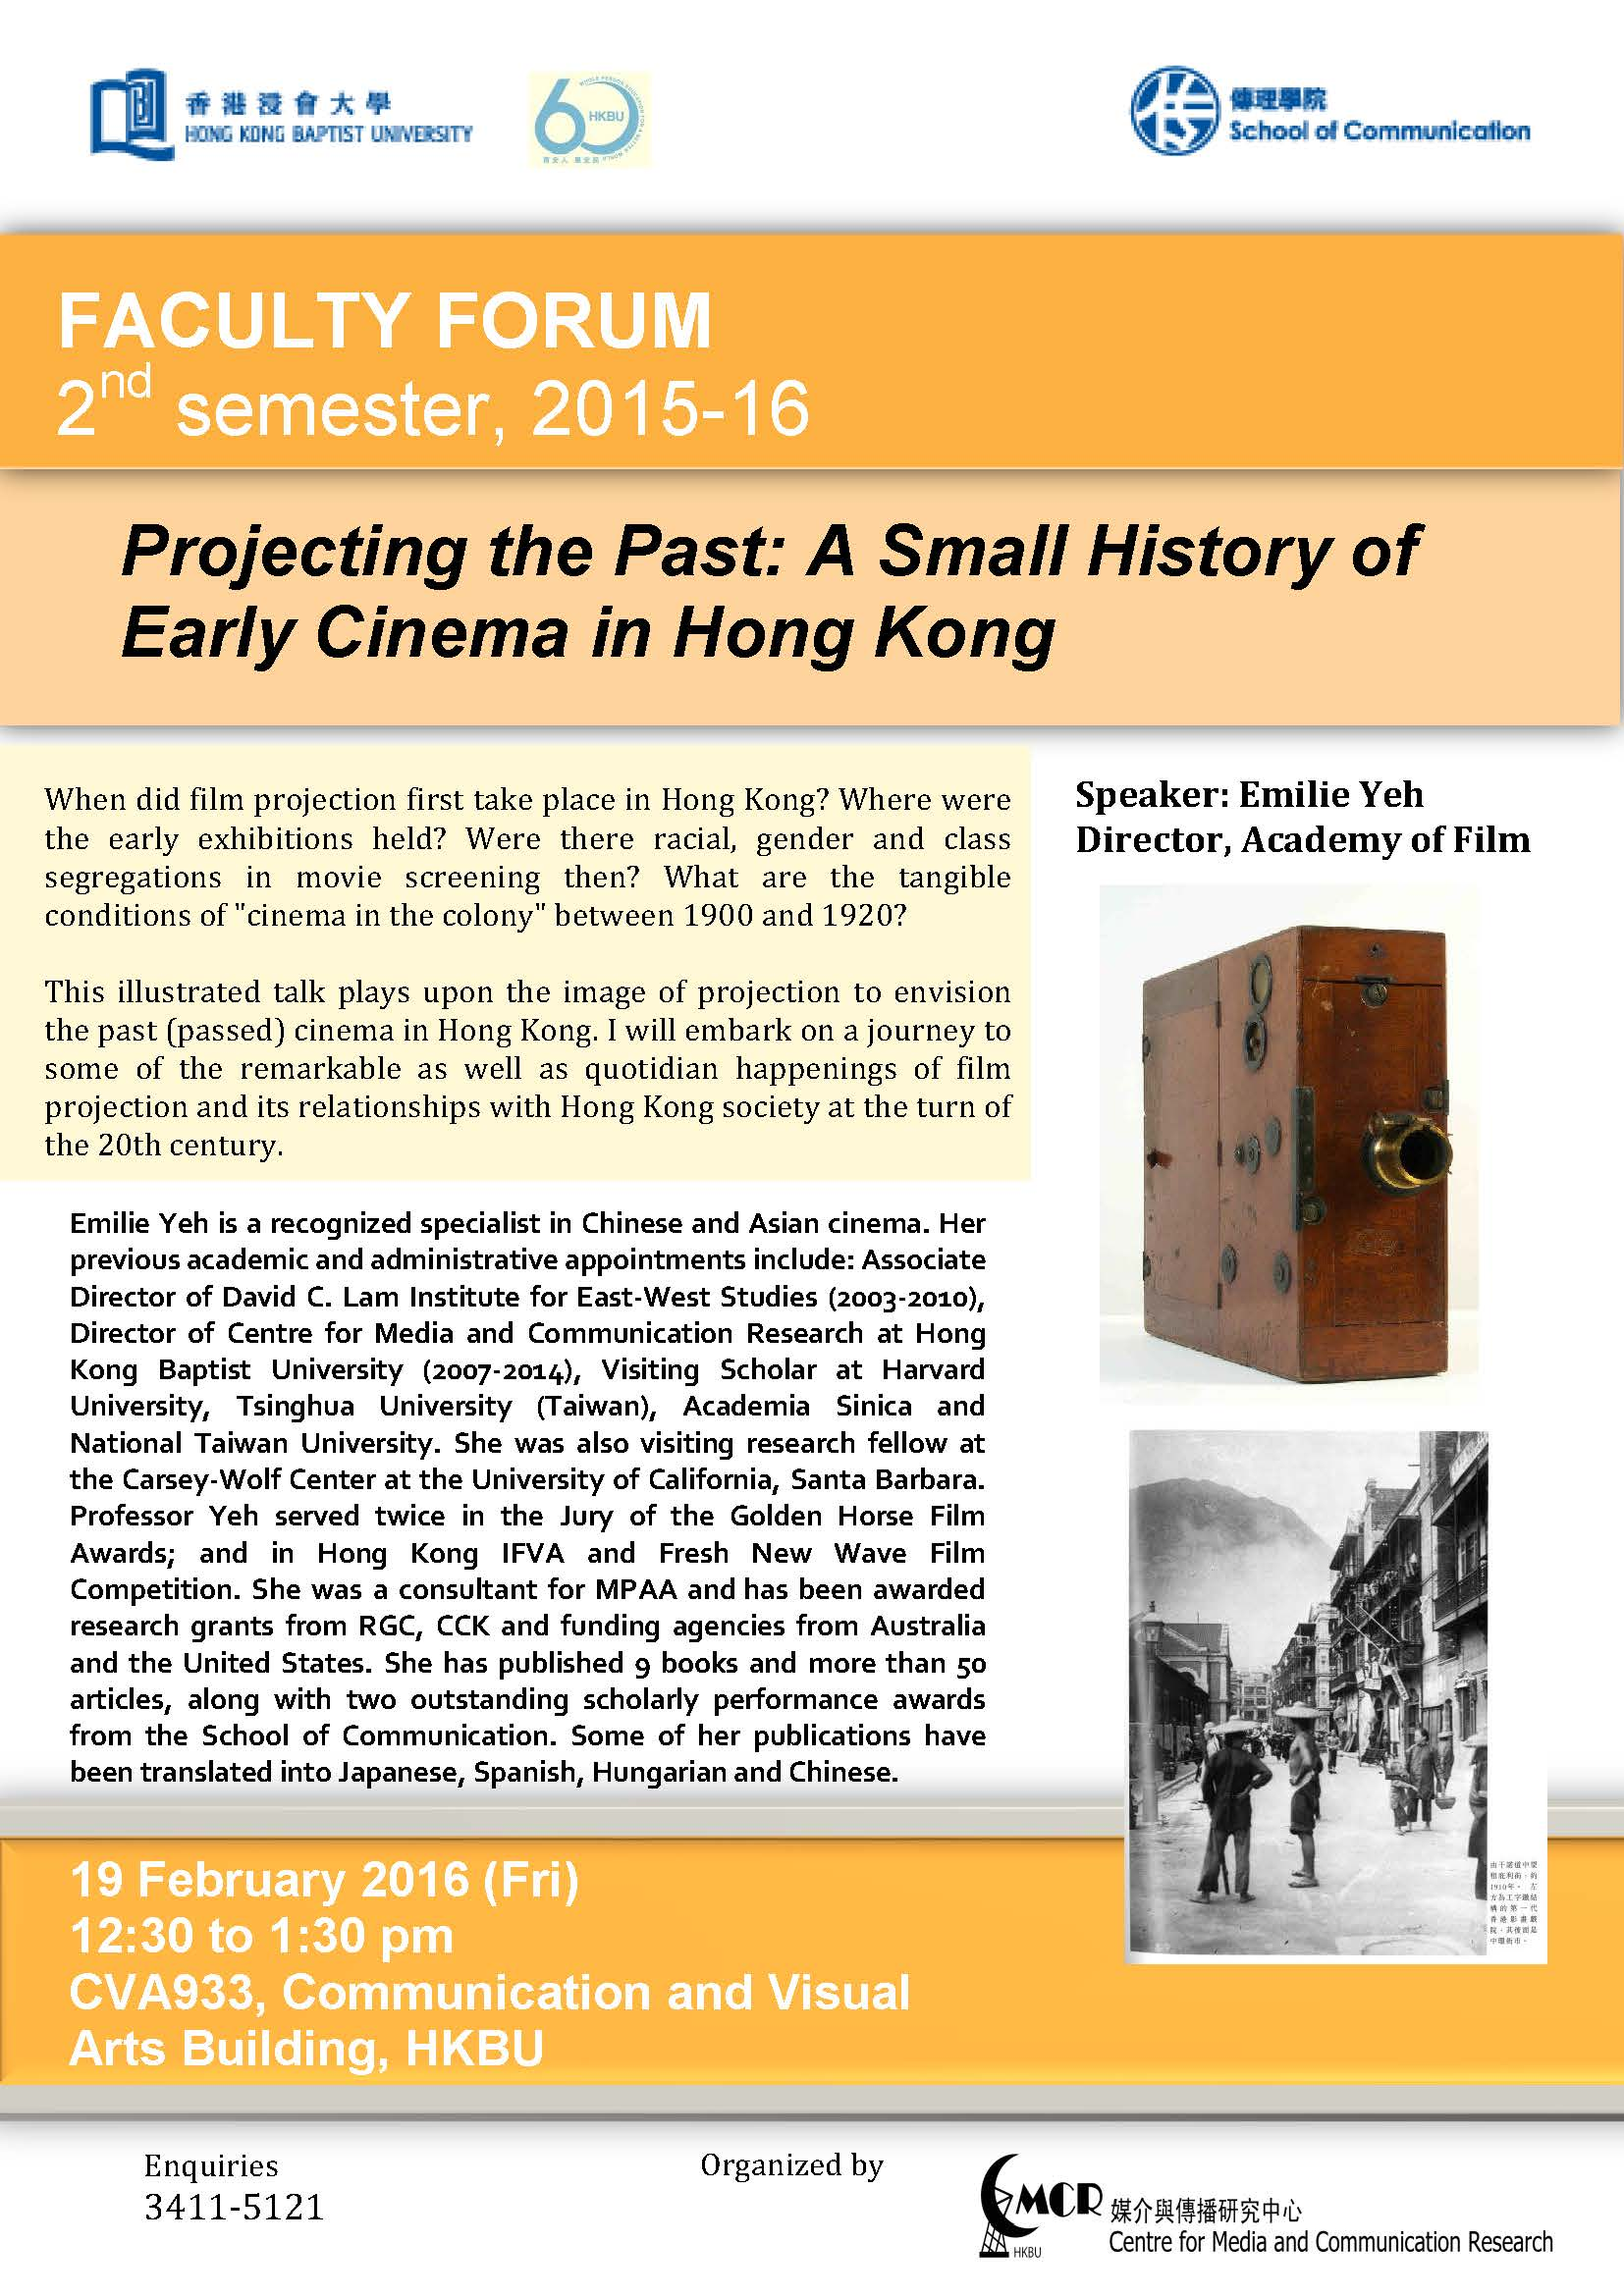 Projecting the Past: A Small History of Early Cinema in Hong Kong